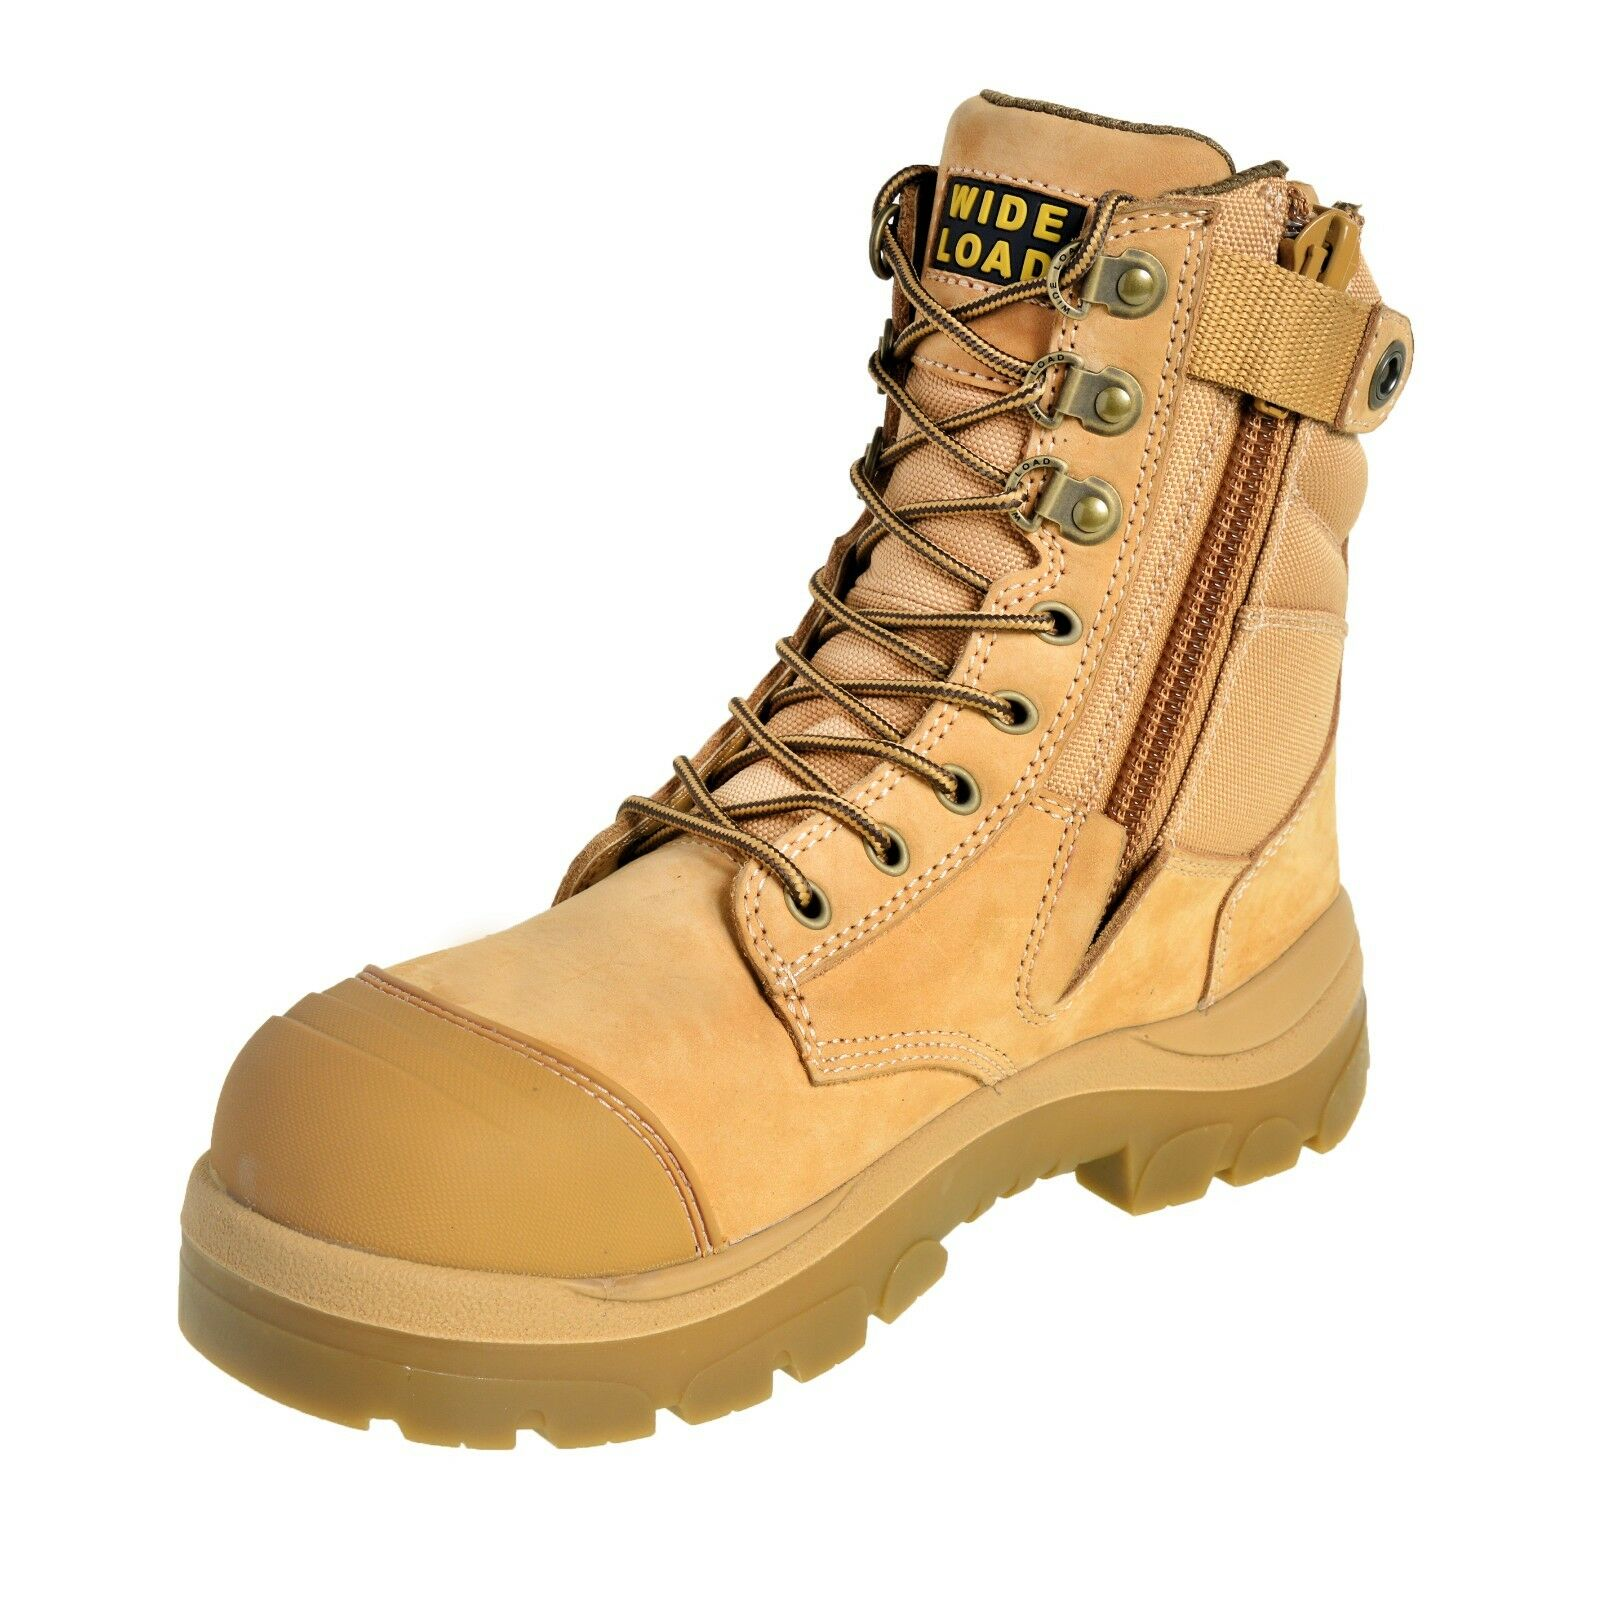 Wide Load 'S3' 890WZ  Extra Safety Wide, Steel Cap Safety Extra Botas. Wheat Nubuck. Side Zip b414c6